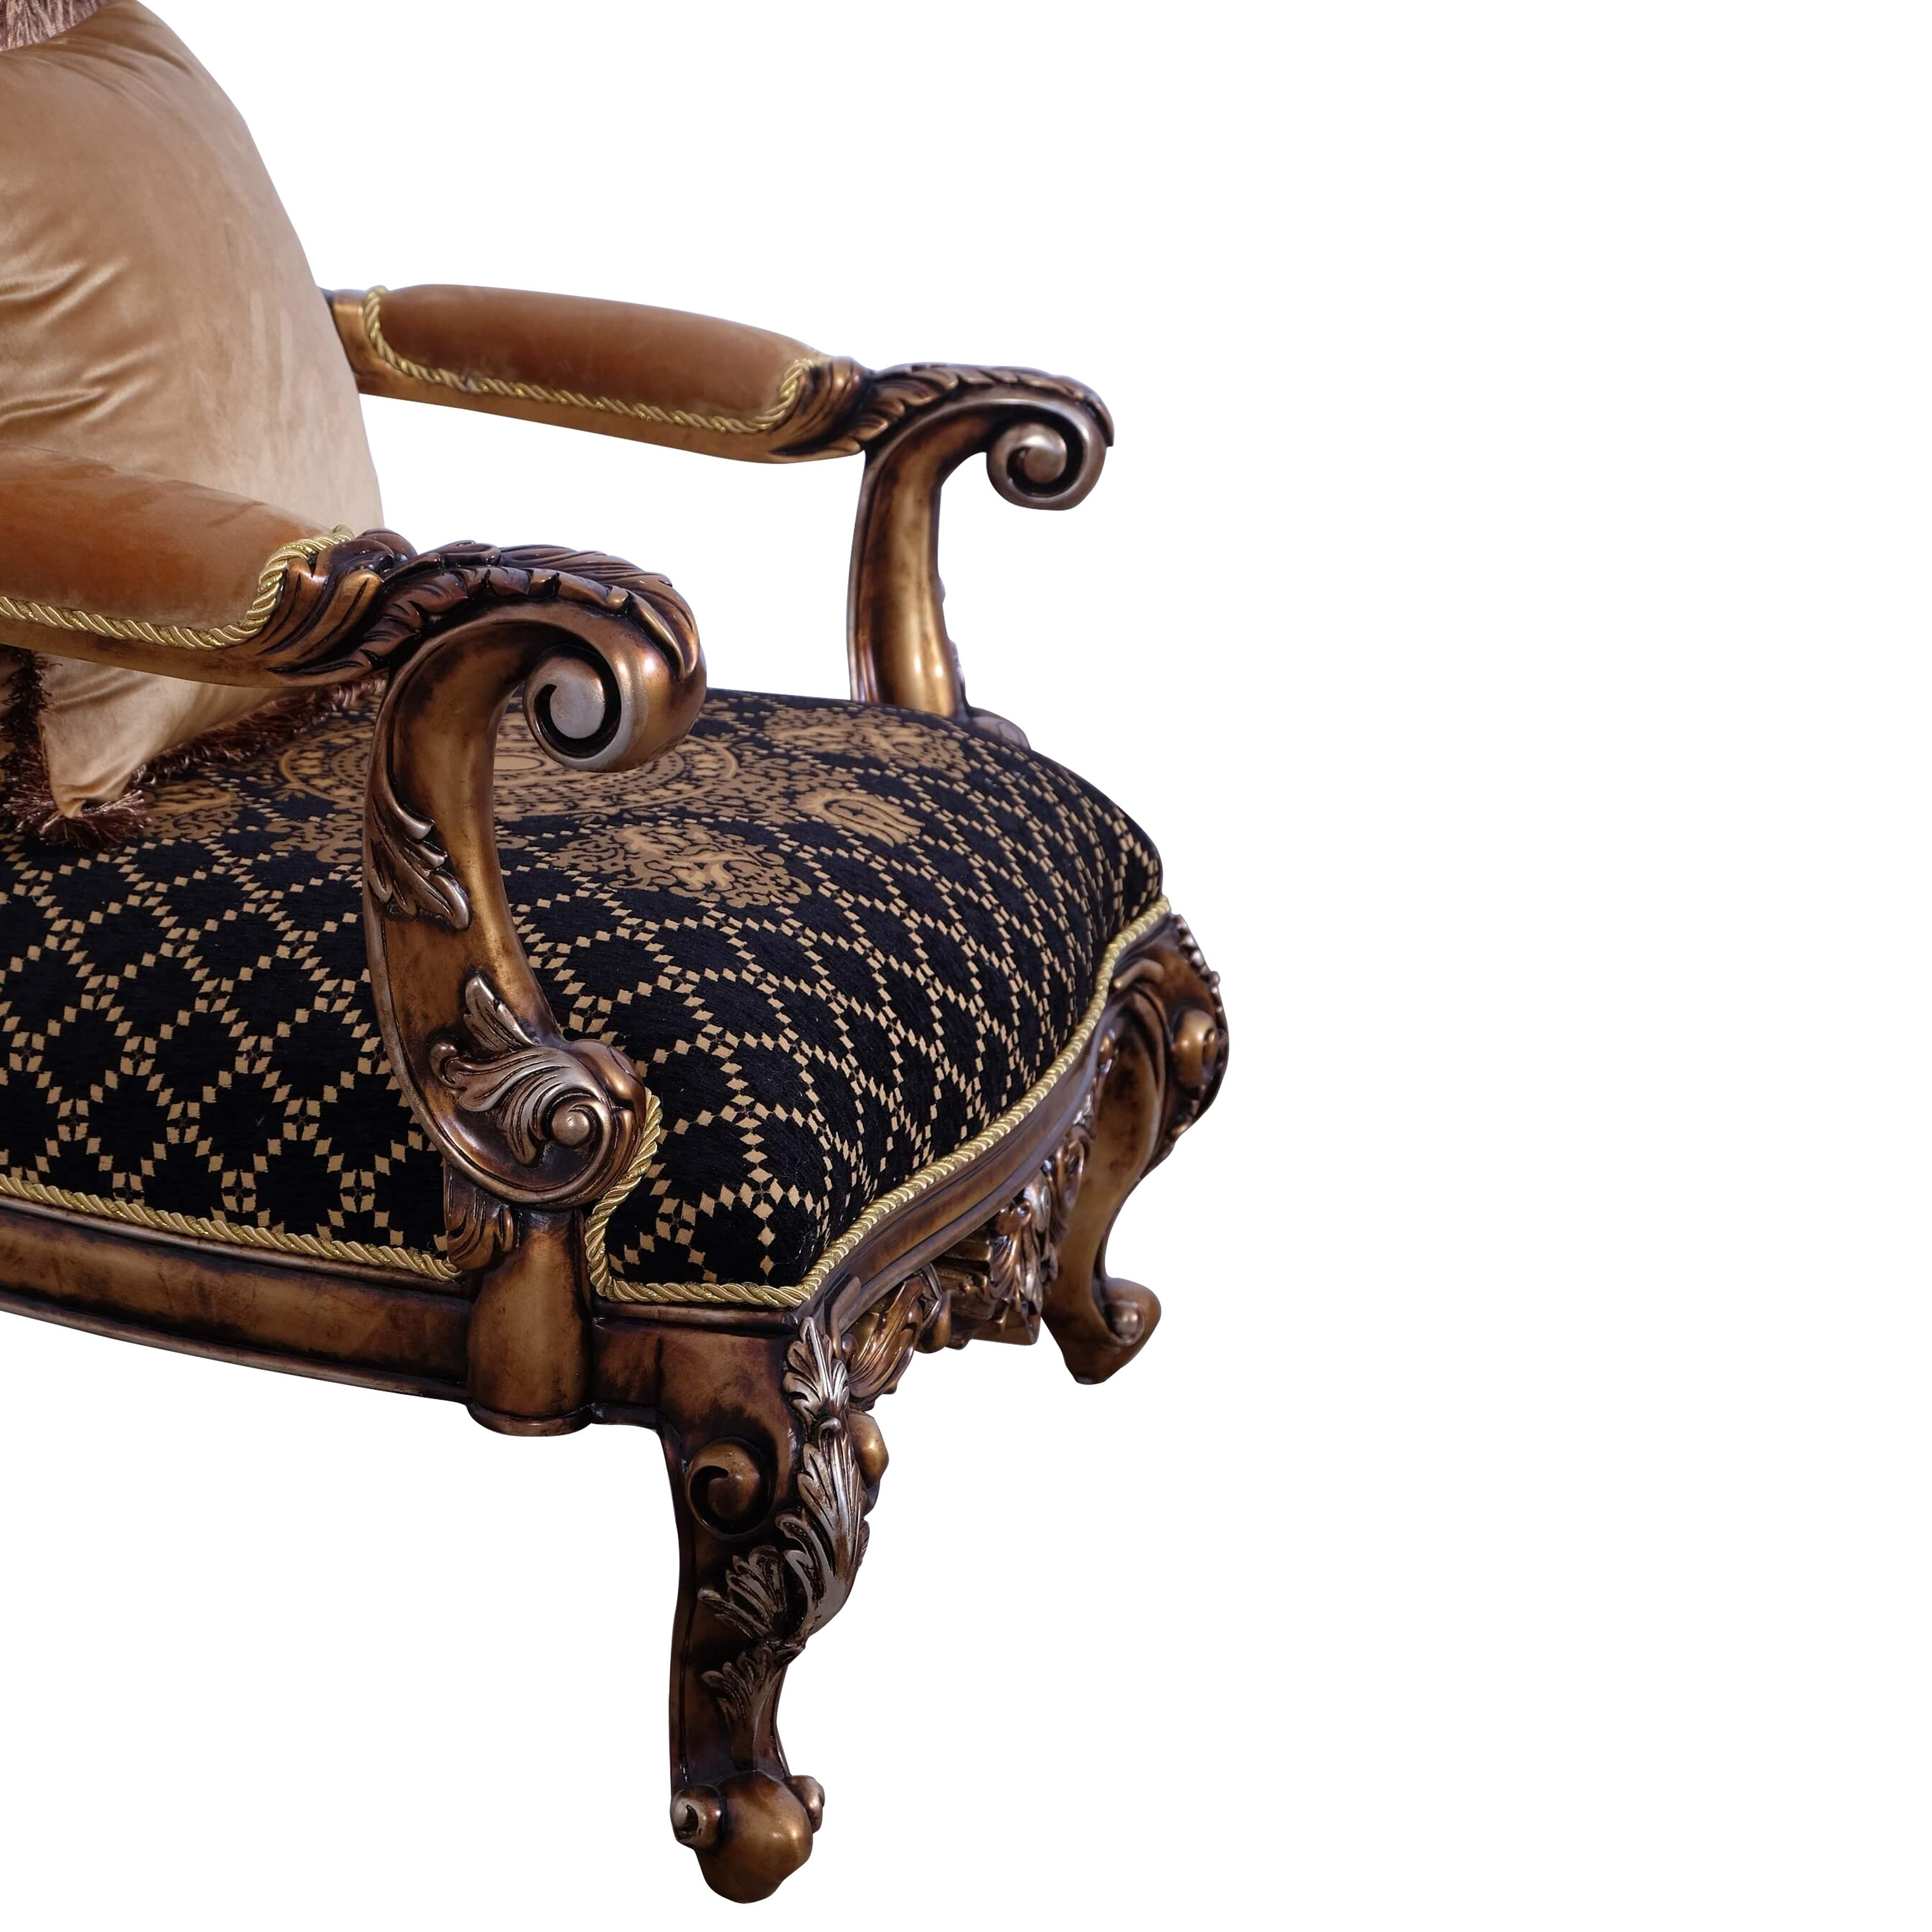 Baroque Style Wooden Chair With Carved Decoration Brown And Black On Sale Overstock 29158145